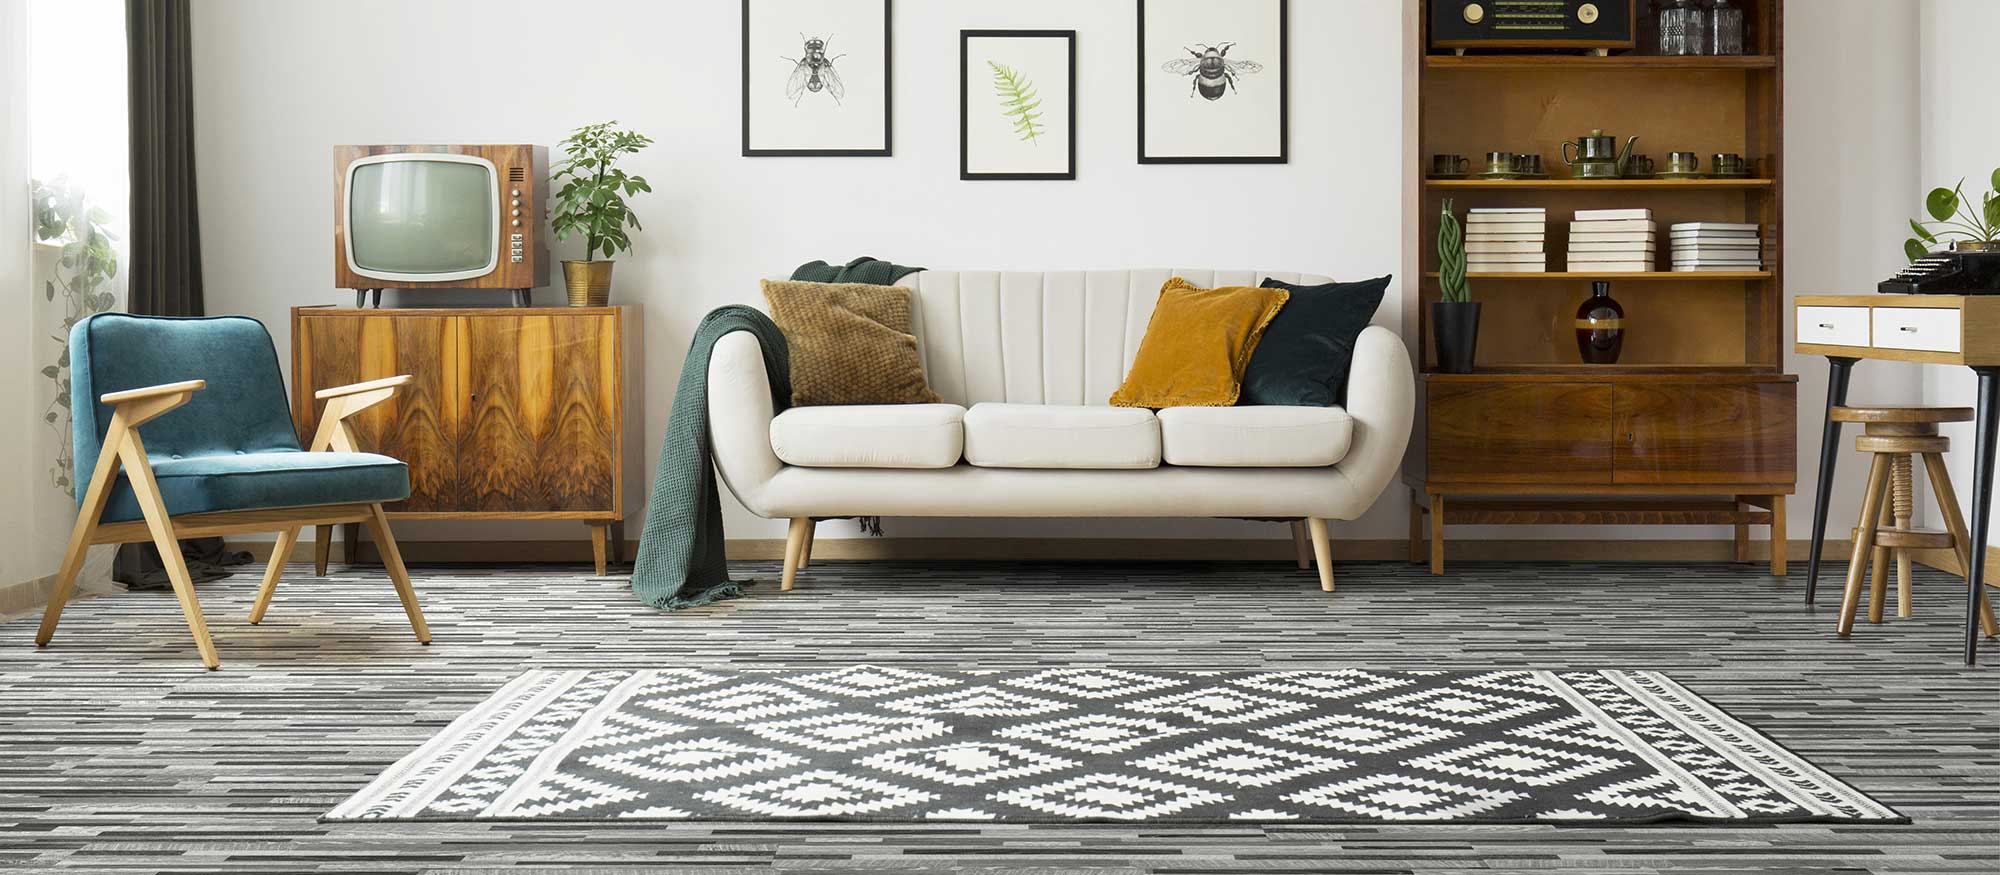 New flooring product colour options